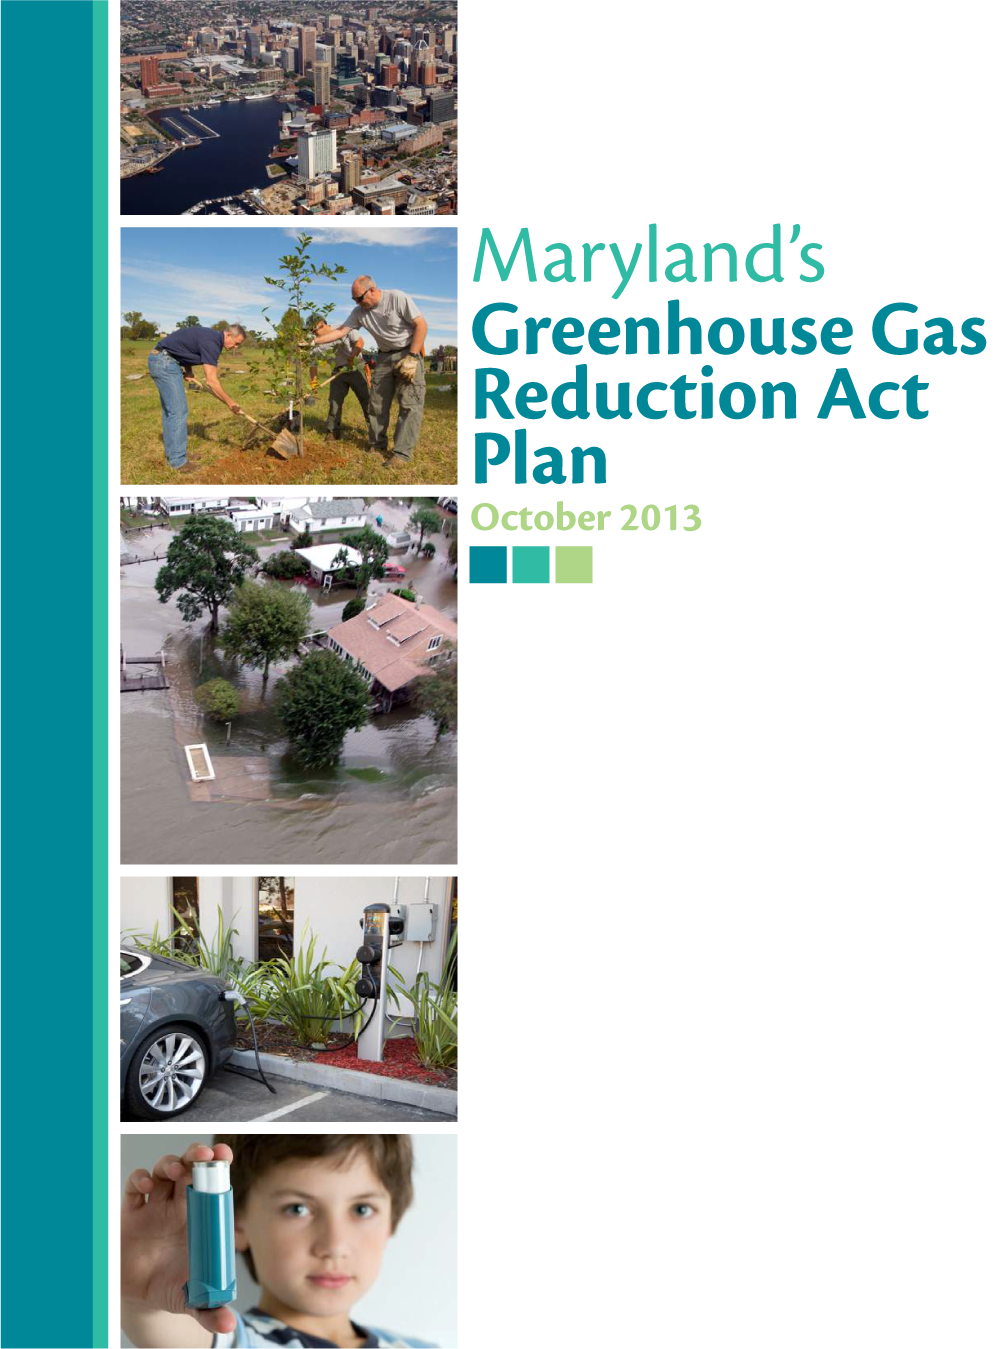 Cover page link to 2012 GGRA Plan